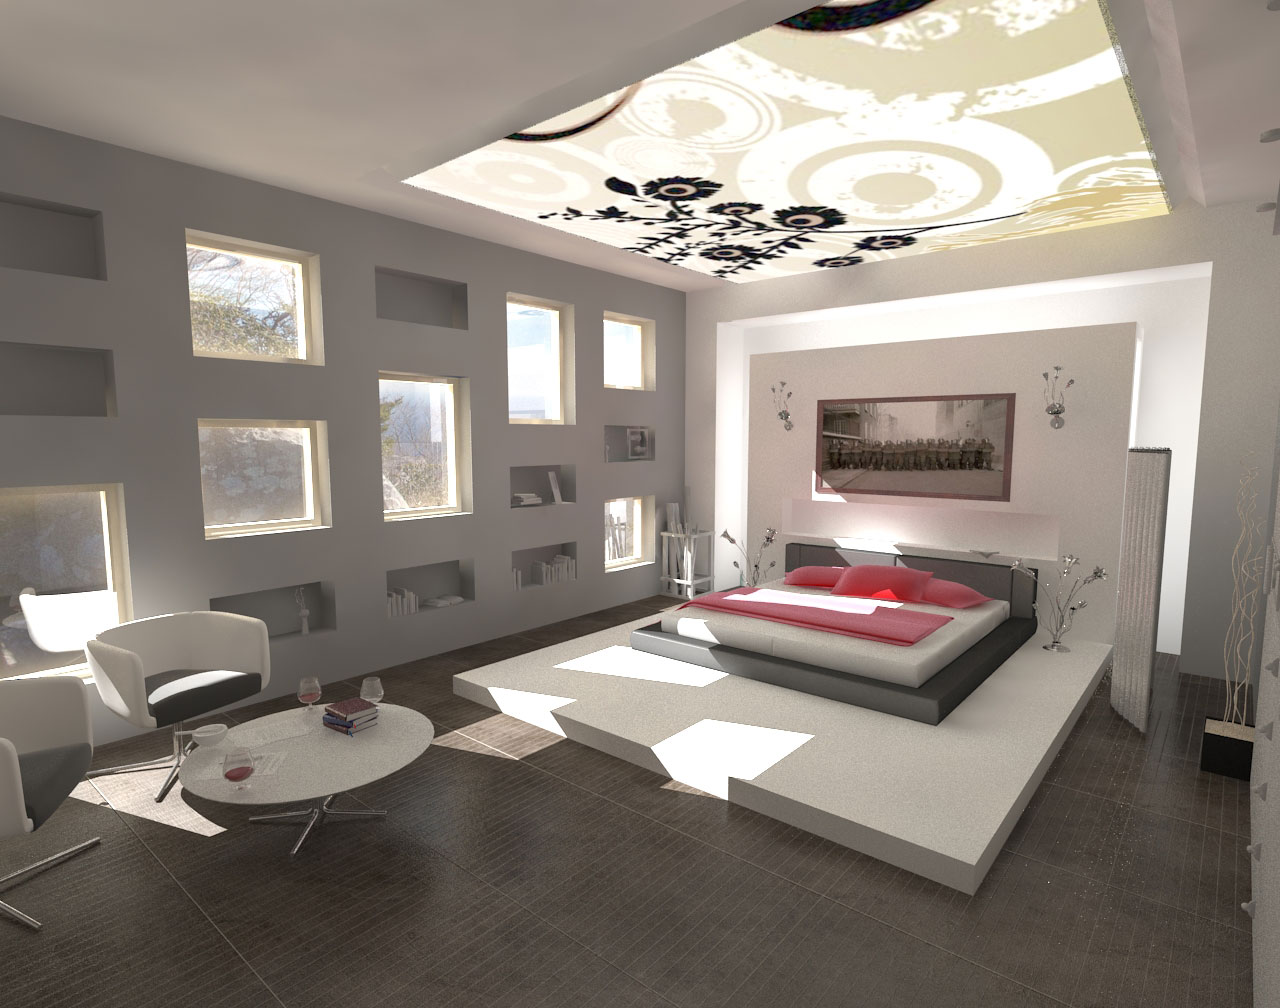 Decorations minimalist design modern bedroom interior for Bedroom designs interior